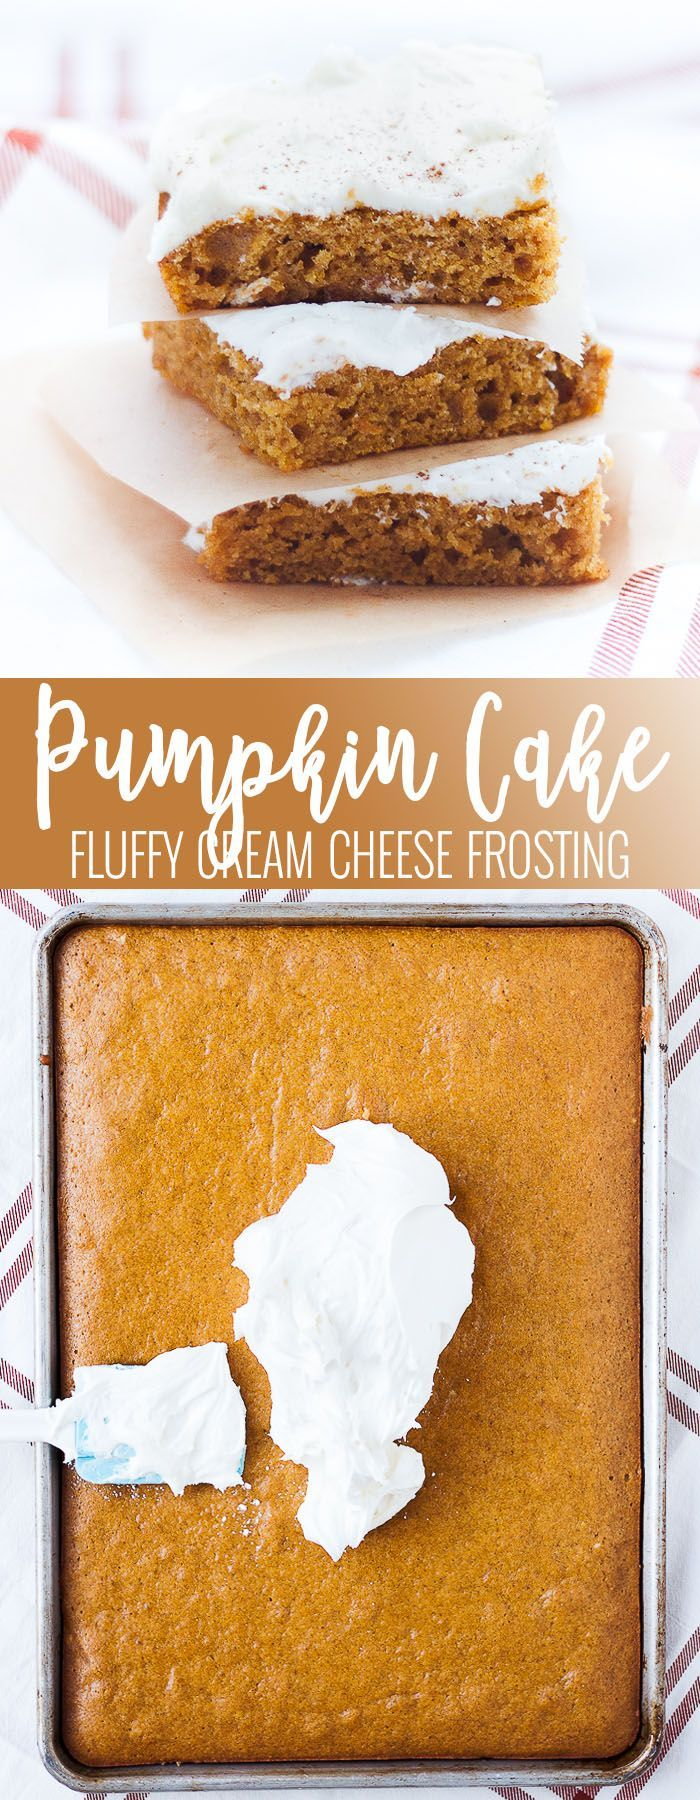 Pumpkin Cake Recipe | how to make a pumpkin cake | homemade pumpkin cake | easy pumpkin cake recipe | pumpkin recipe ideas | pumpkin dessert recipes | fall recipe ideas | fall dessert recipes || Oh So Delicioso